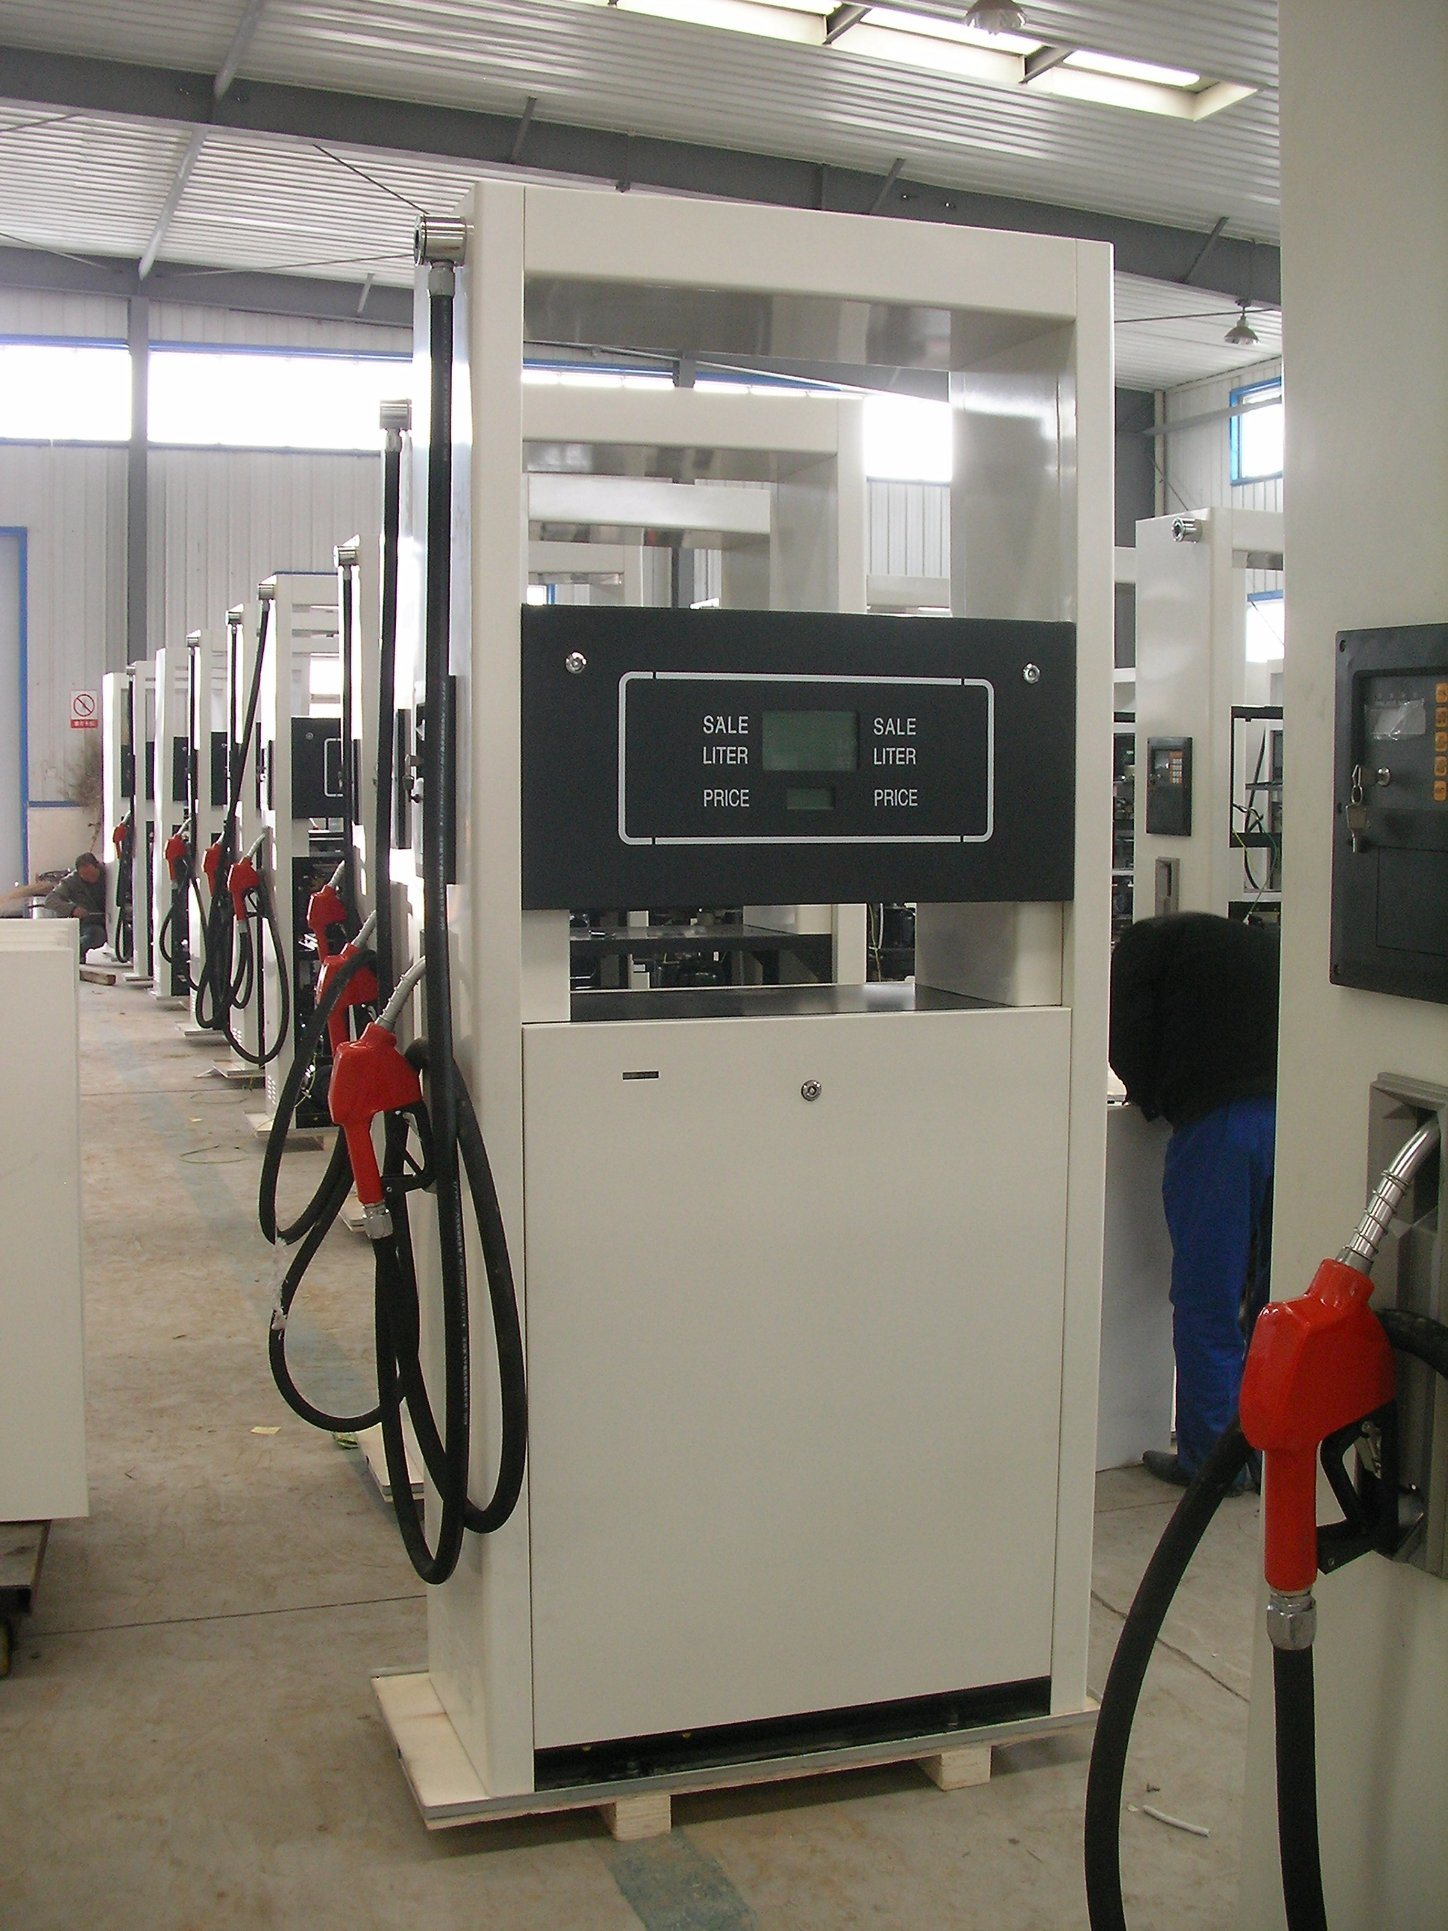 Two Nozzle Two Pump Oil Station Fuel Dispenser